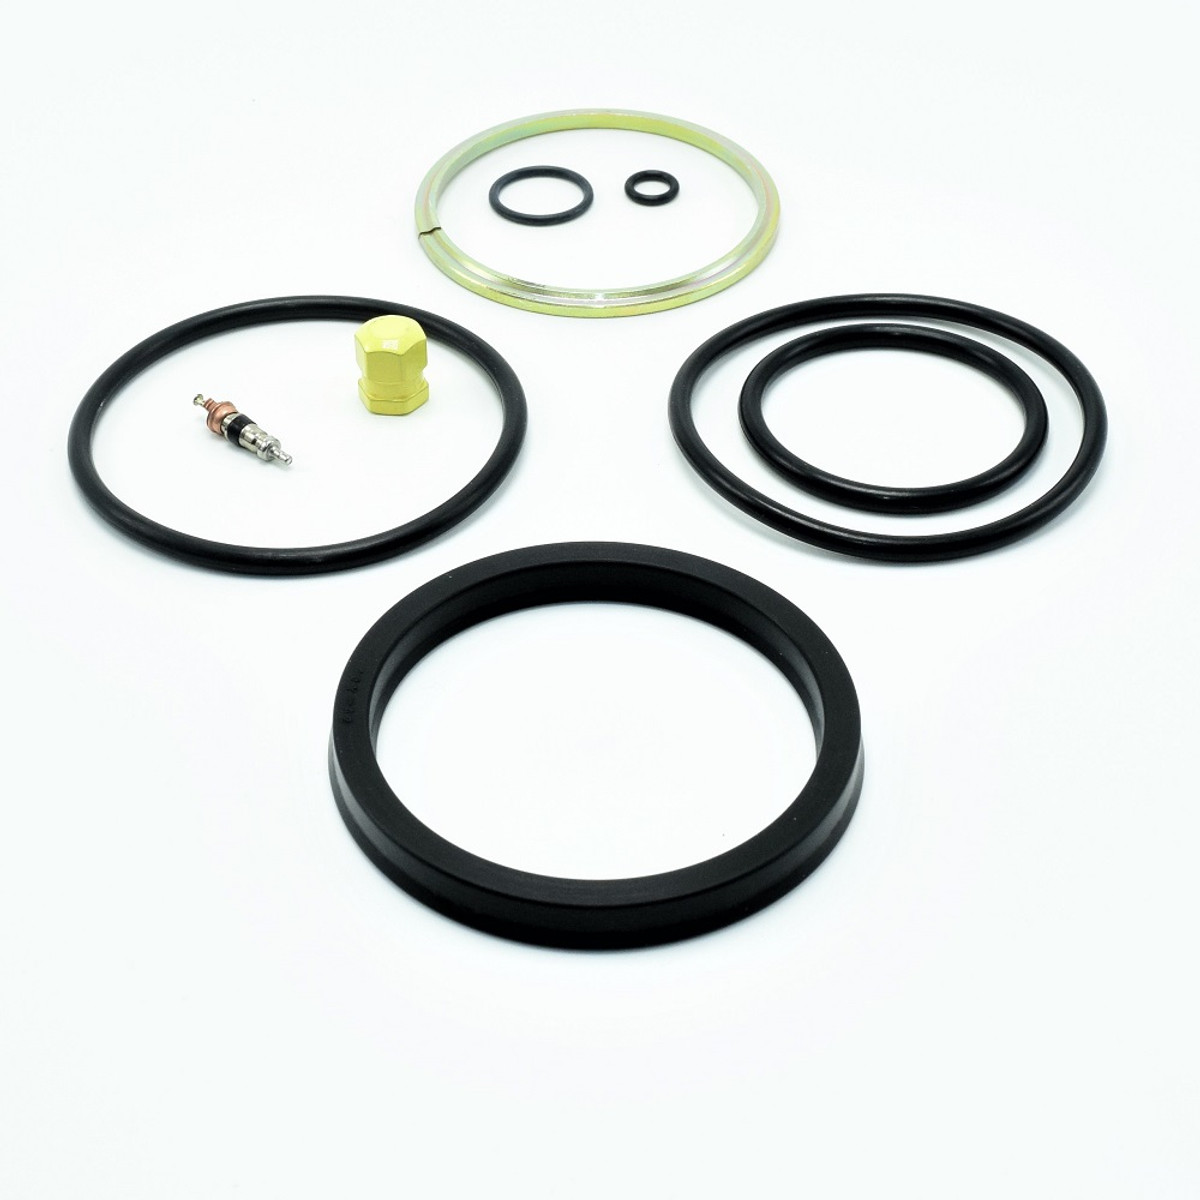 Strut Seal Kit  for Main Gear, Cessna 400 Series. 104-PP400MSSK